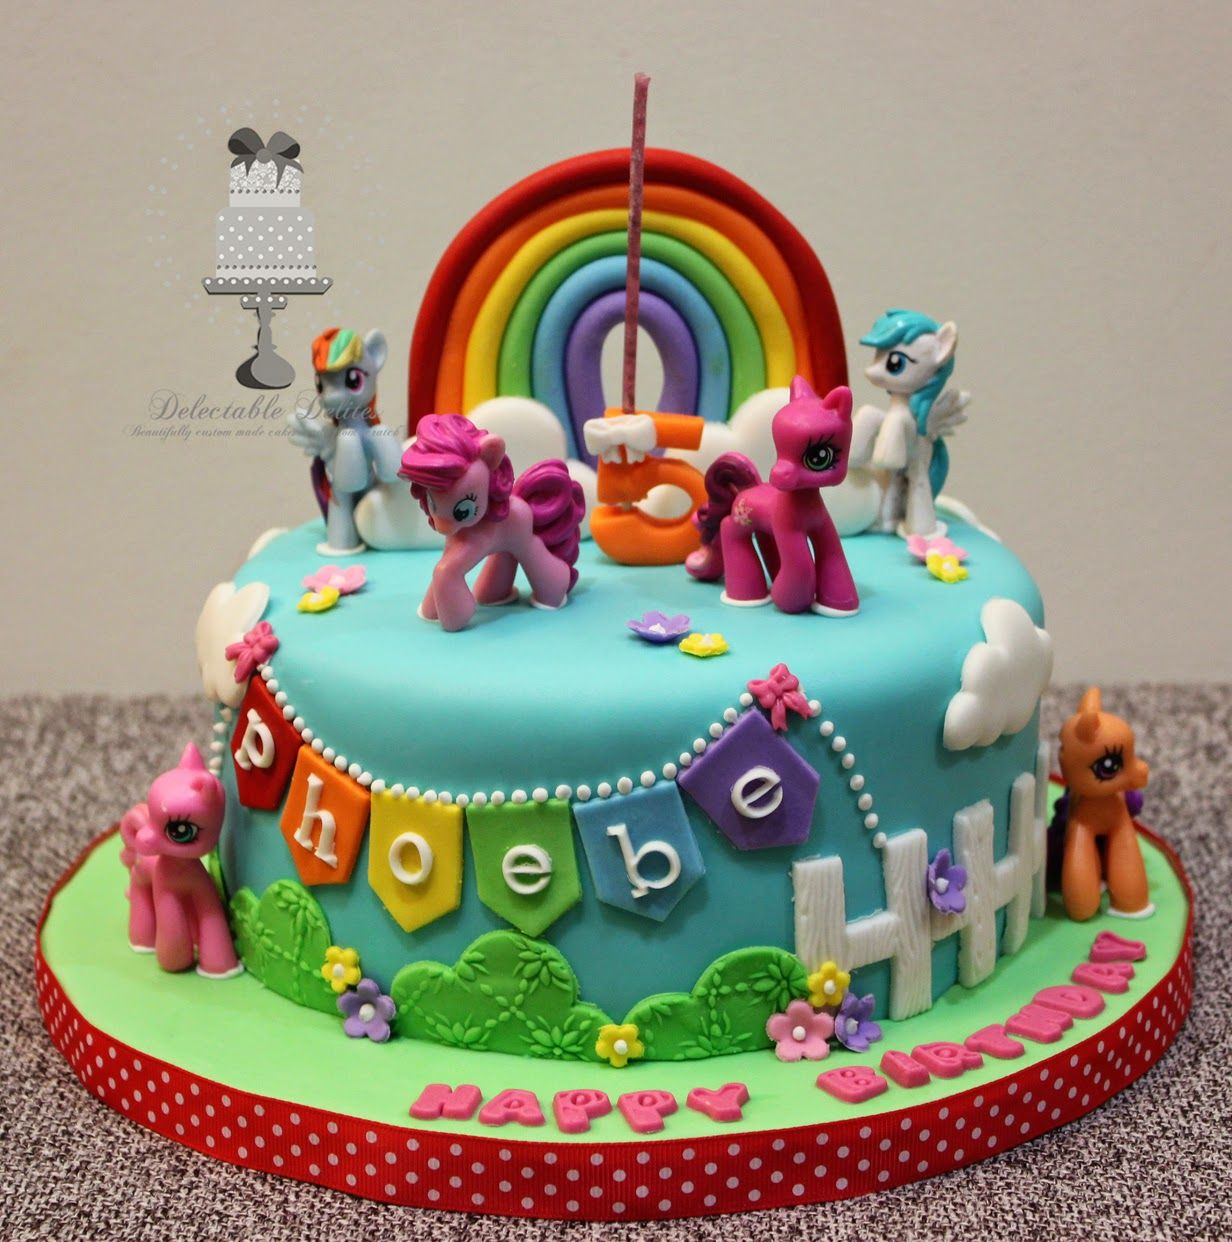 Delectable delites my little pony cake for phoebes 5th